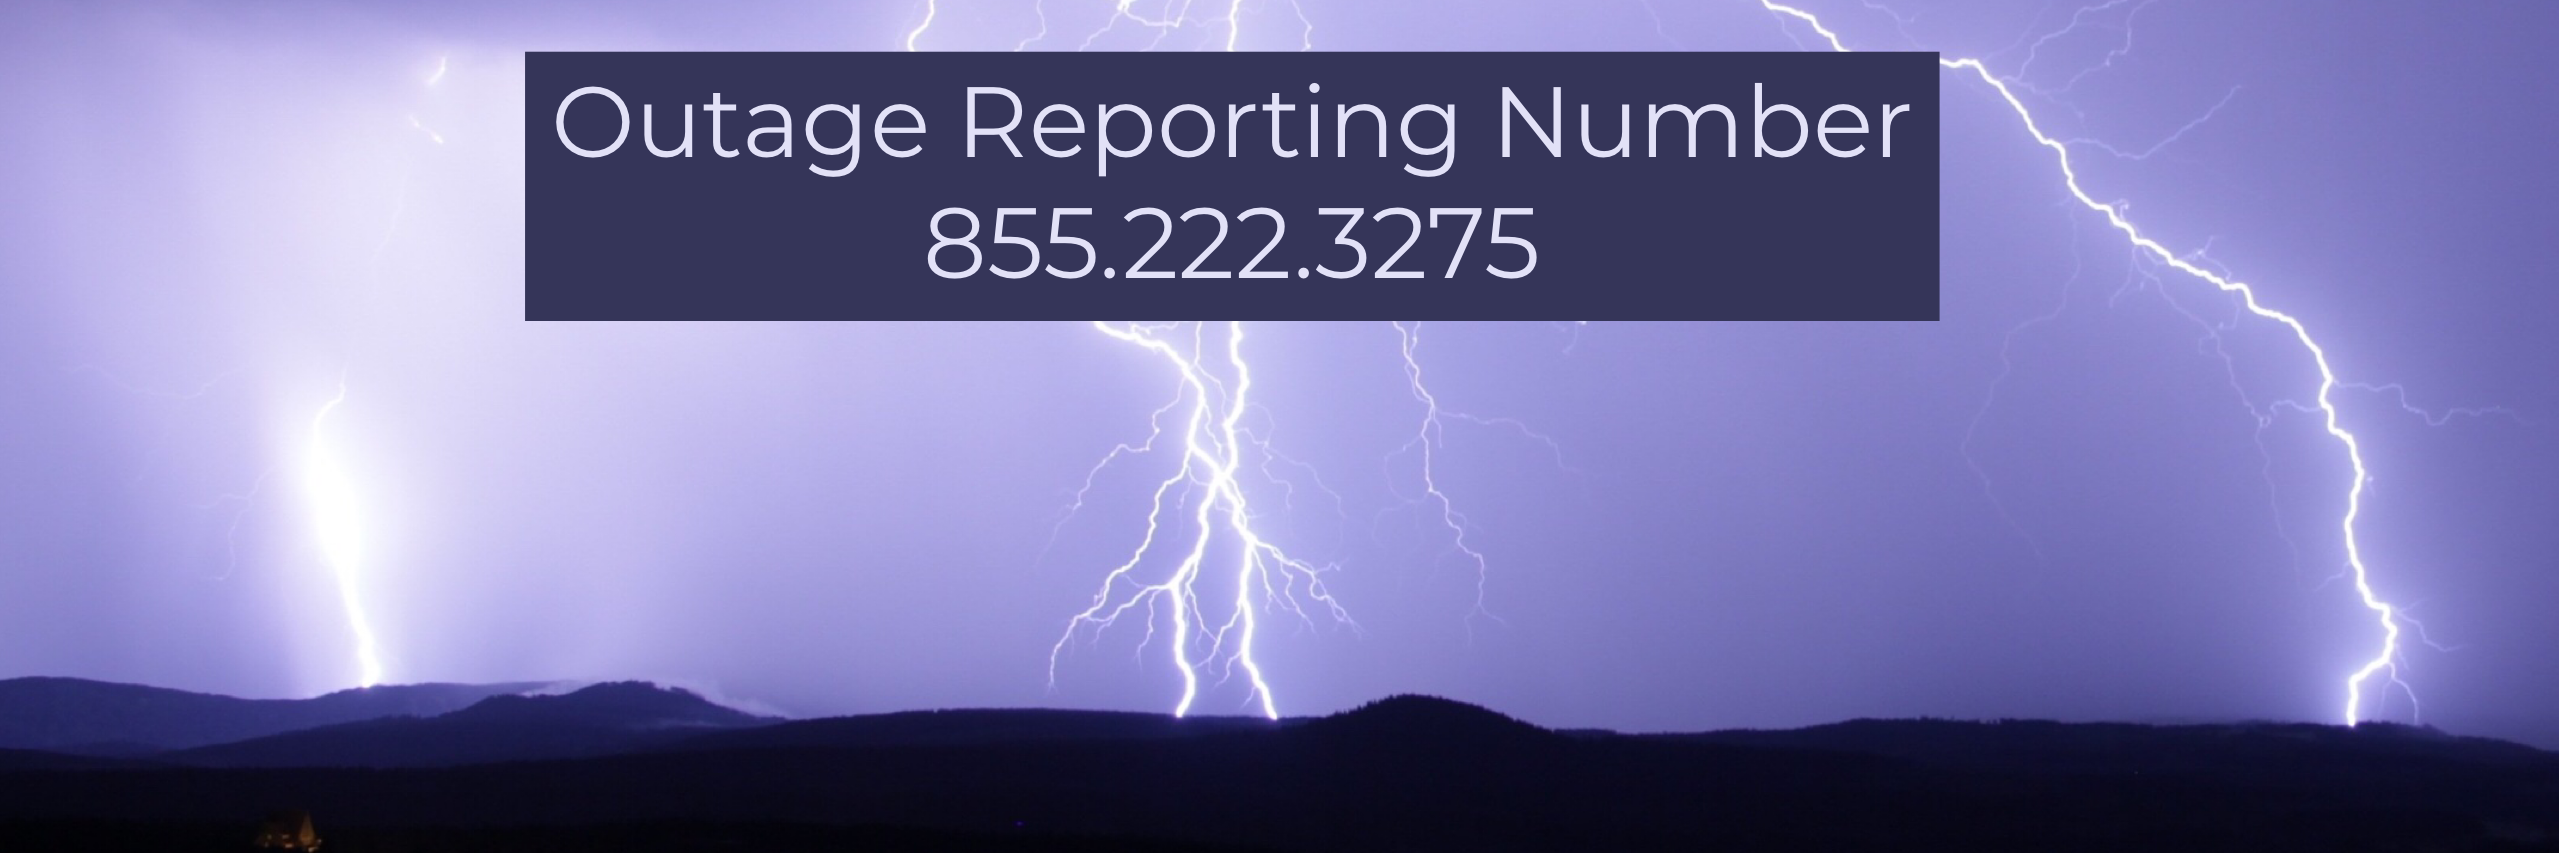 Outage Reporting Number